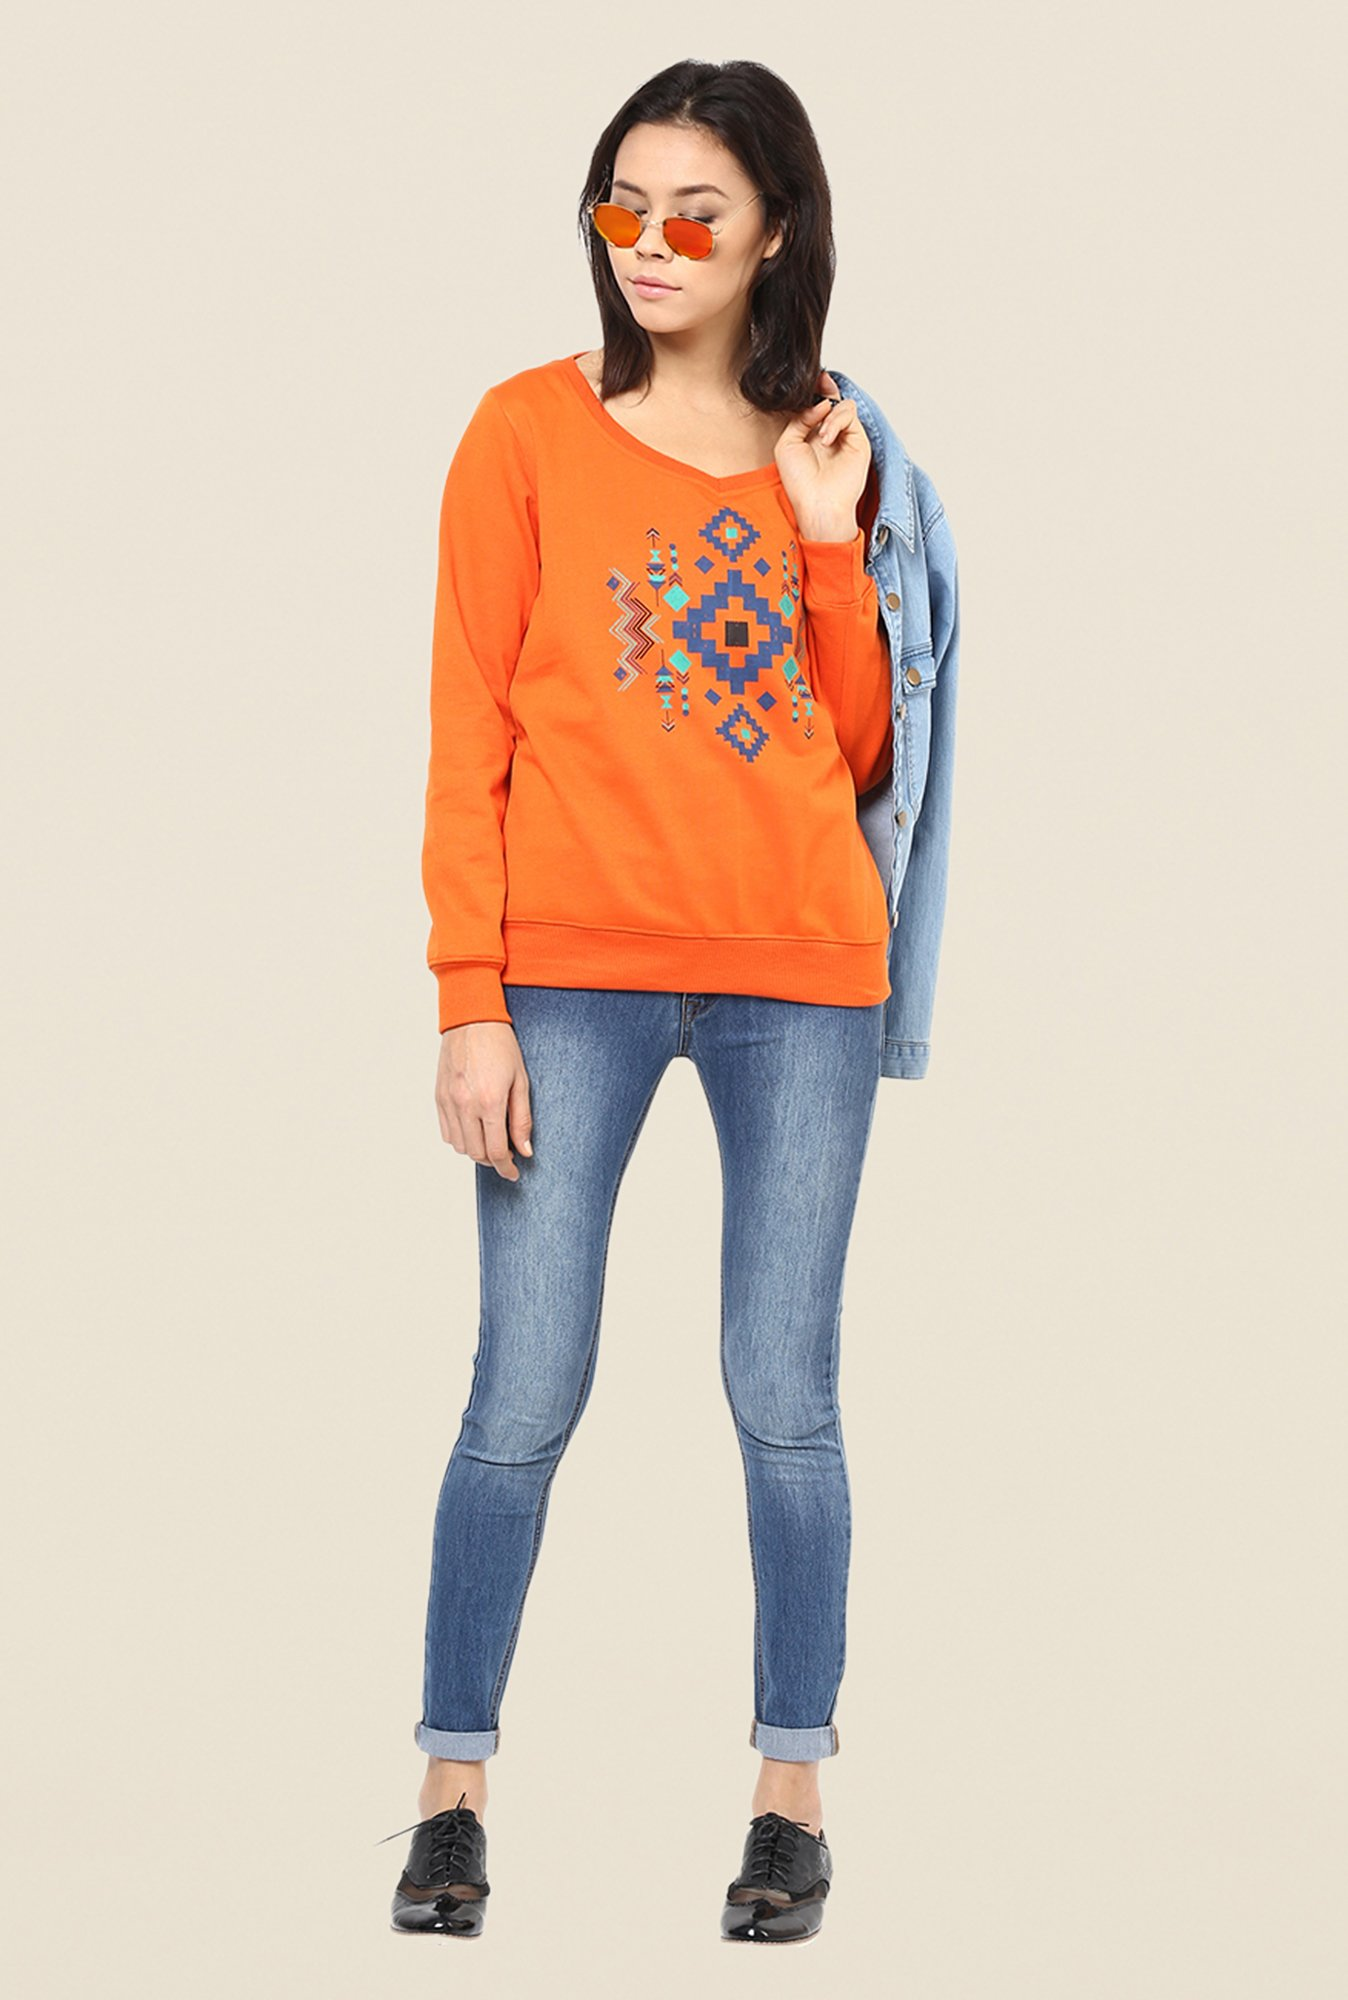 Yepme Carol Orange Sweatshirt